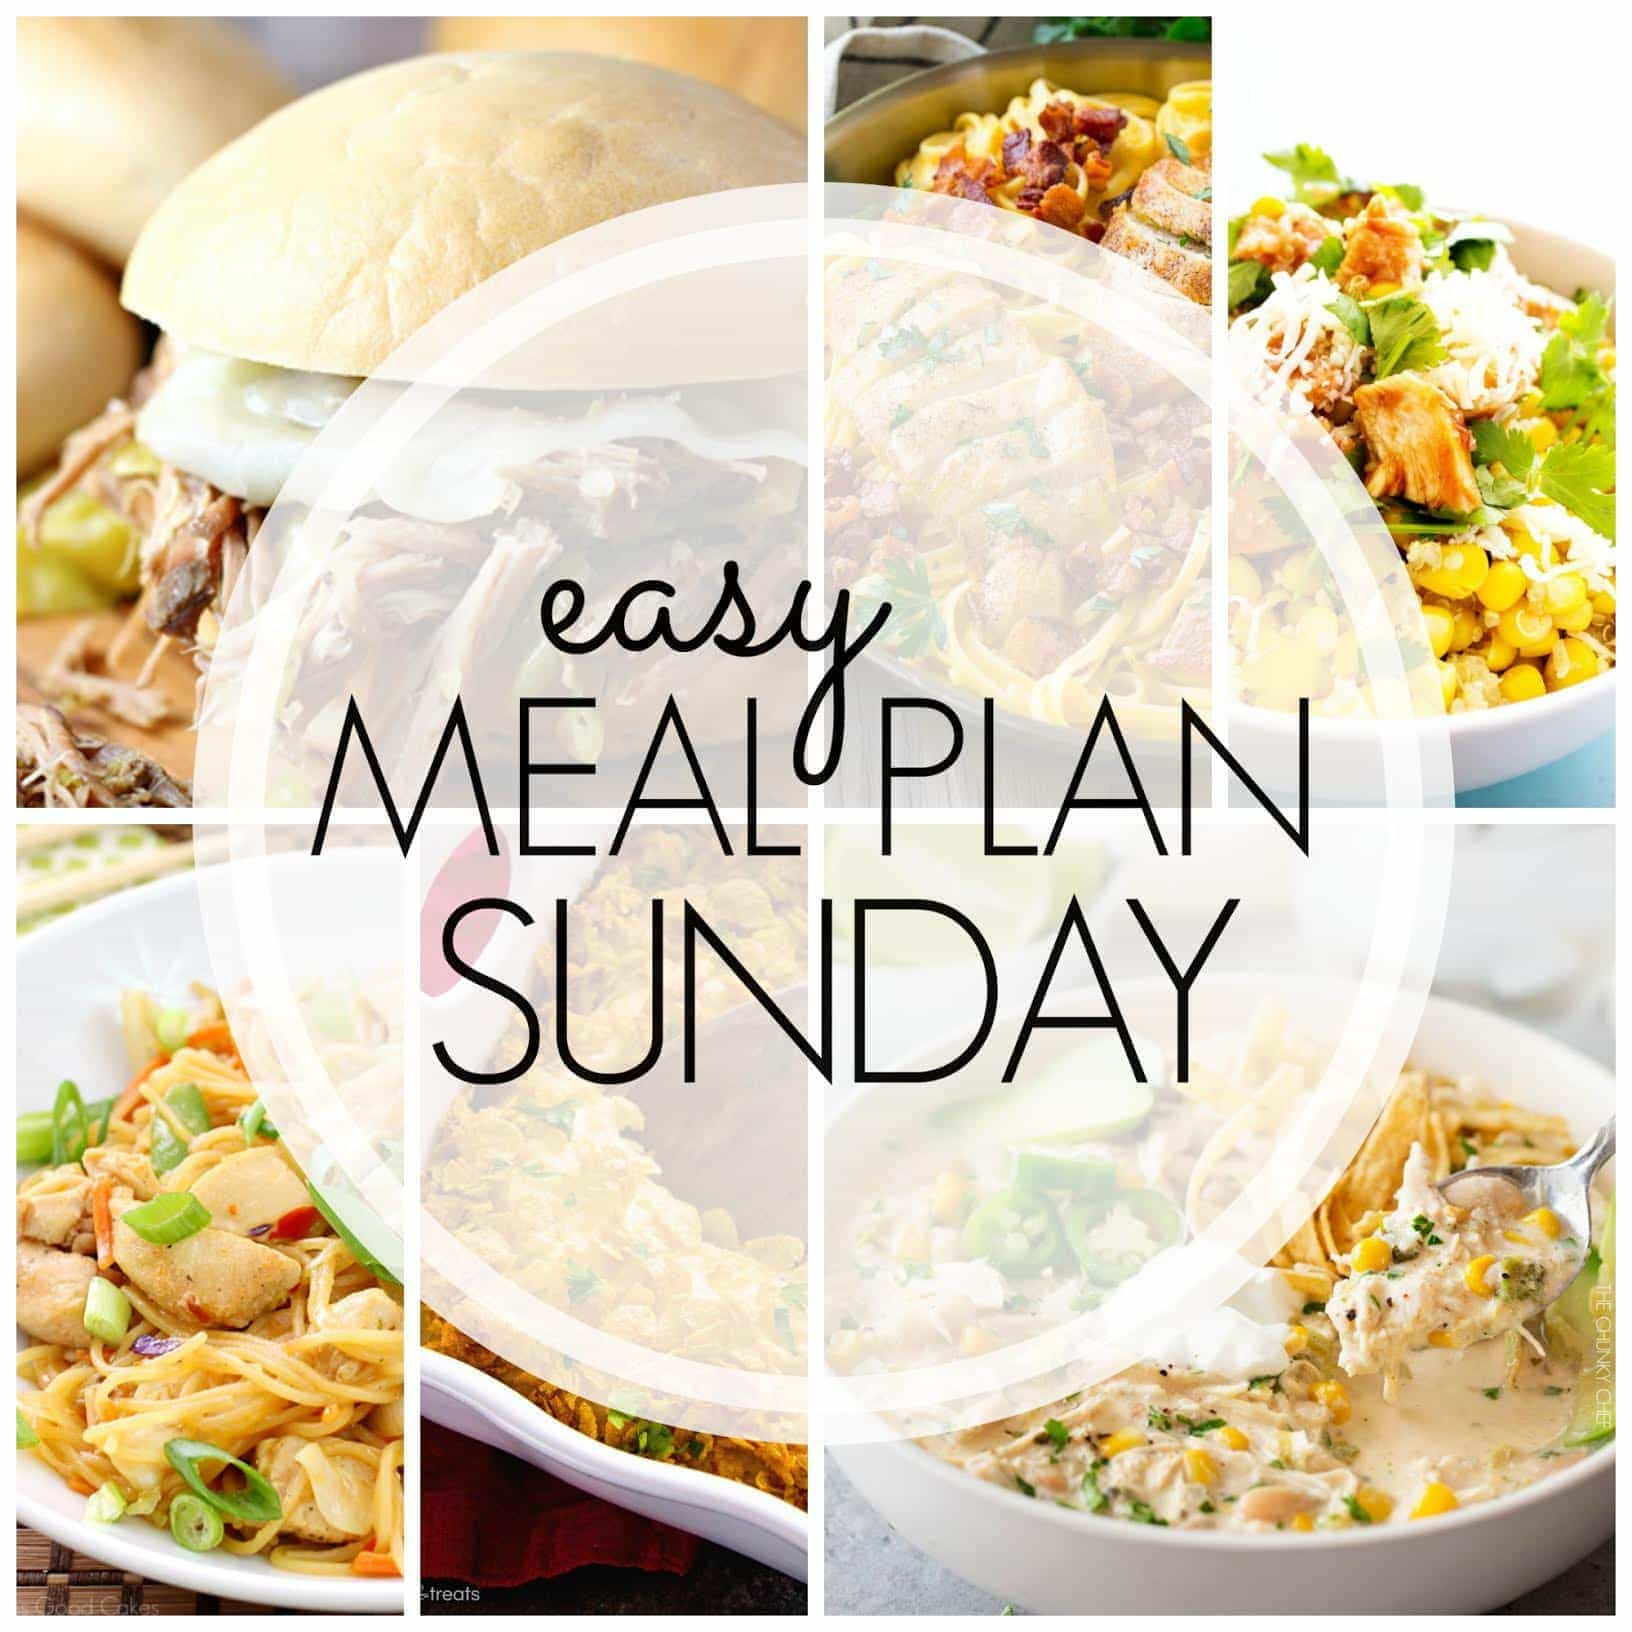 Easy Meal Plan Sunday! Everything you need for a week's worth of delicious meals...all in one place!